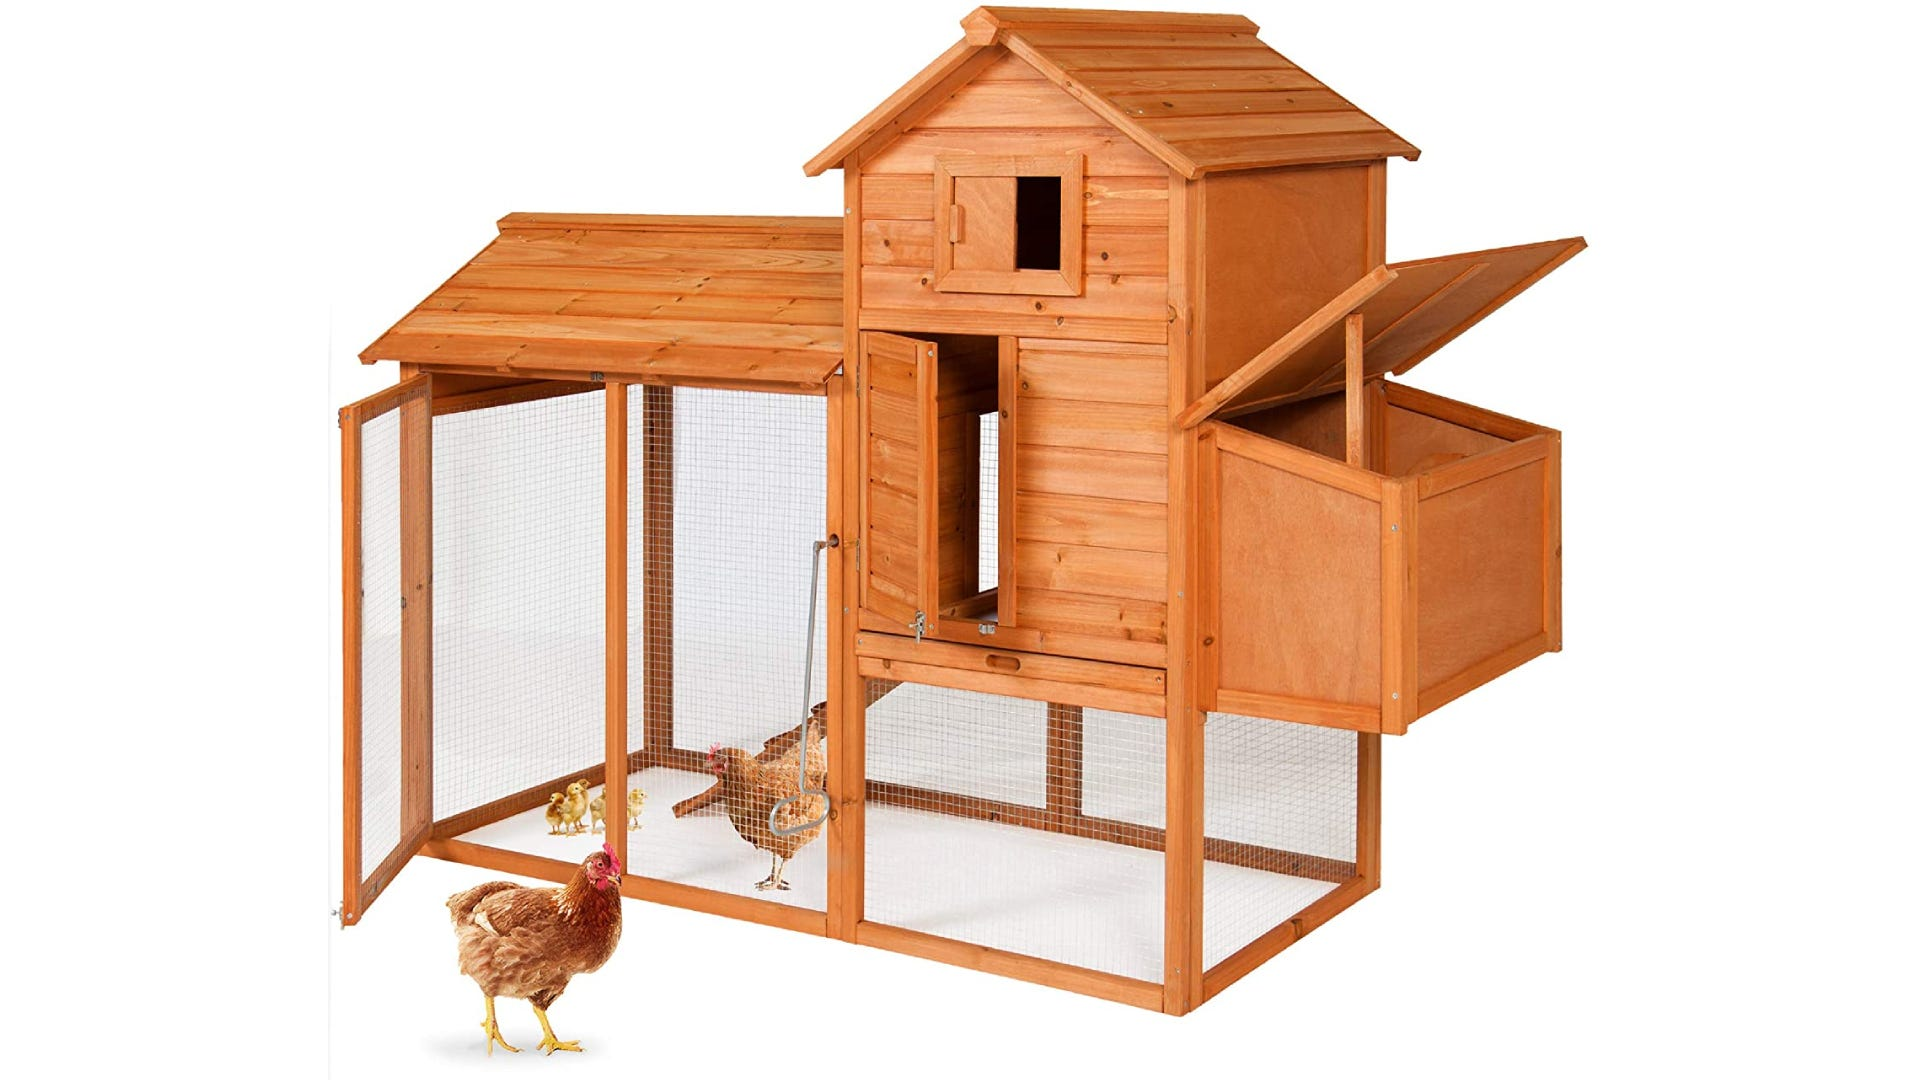 Wooden coop with a nesting box and housing two chickens and some young chicks.